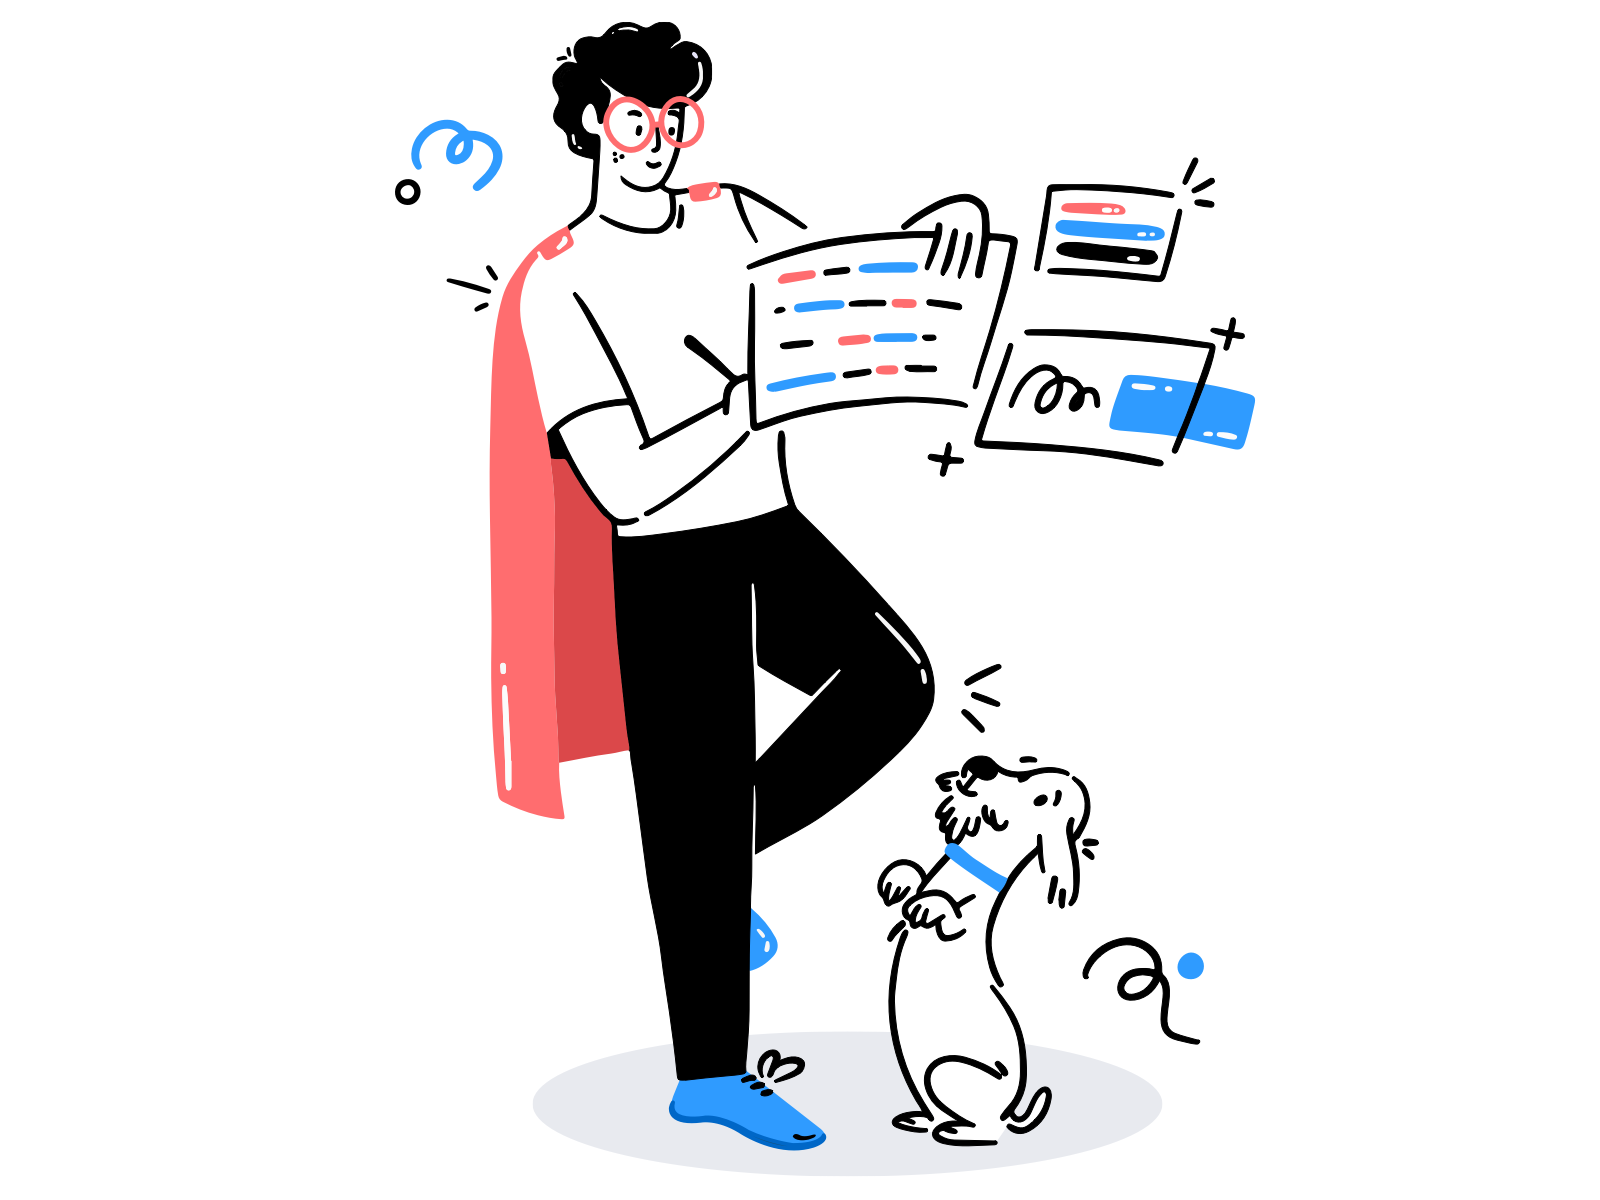 Manage your own task by Siddhita upare for Brucira on Dribbble.